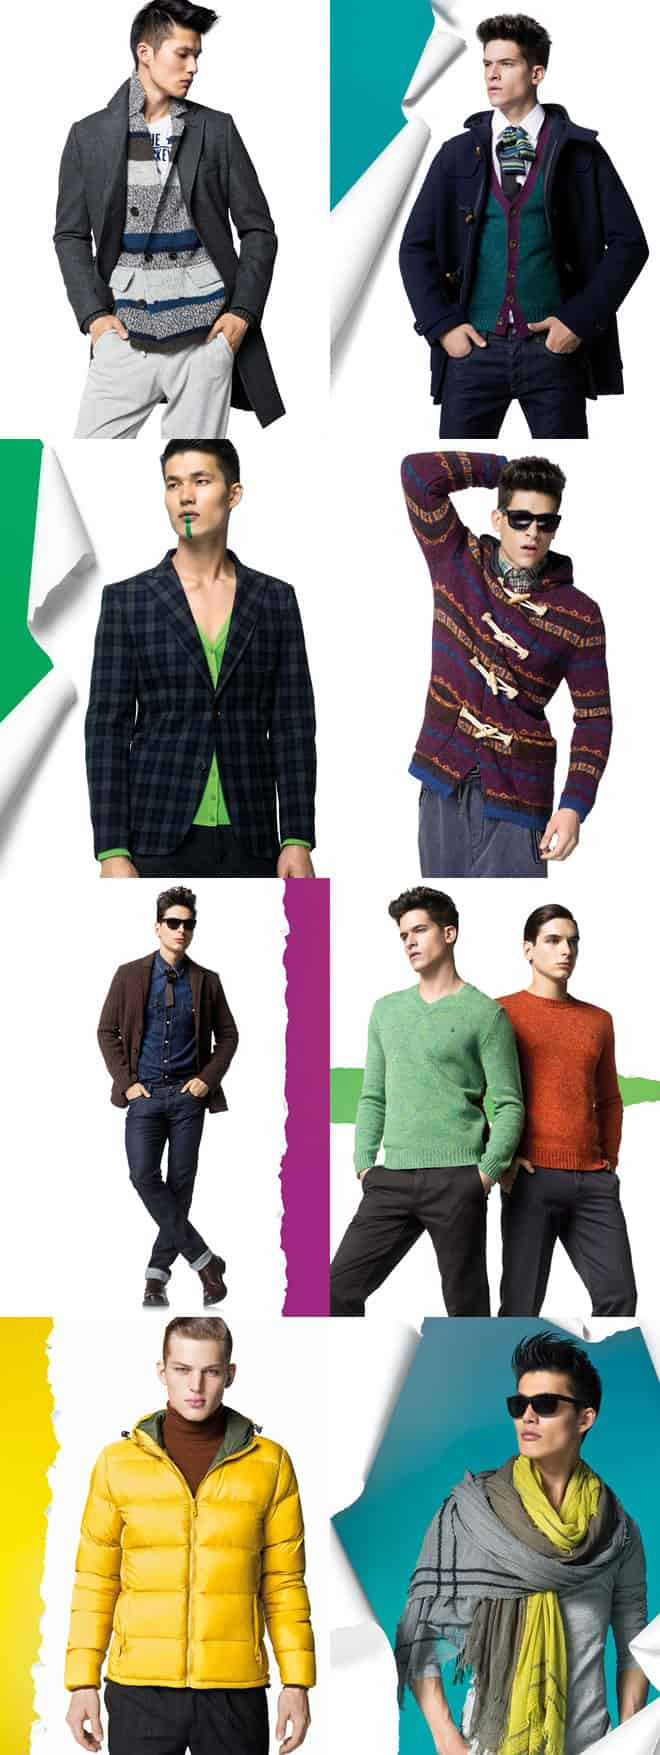 Benetton Clothing AW12 Men's Clothing Campaign